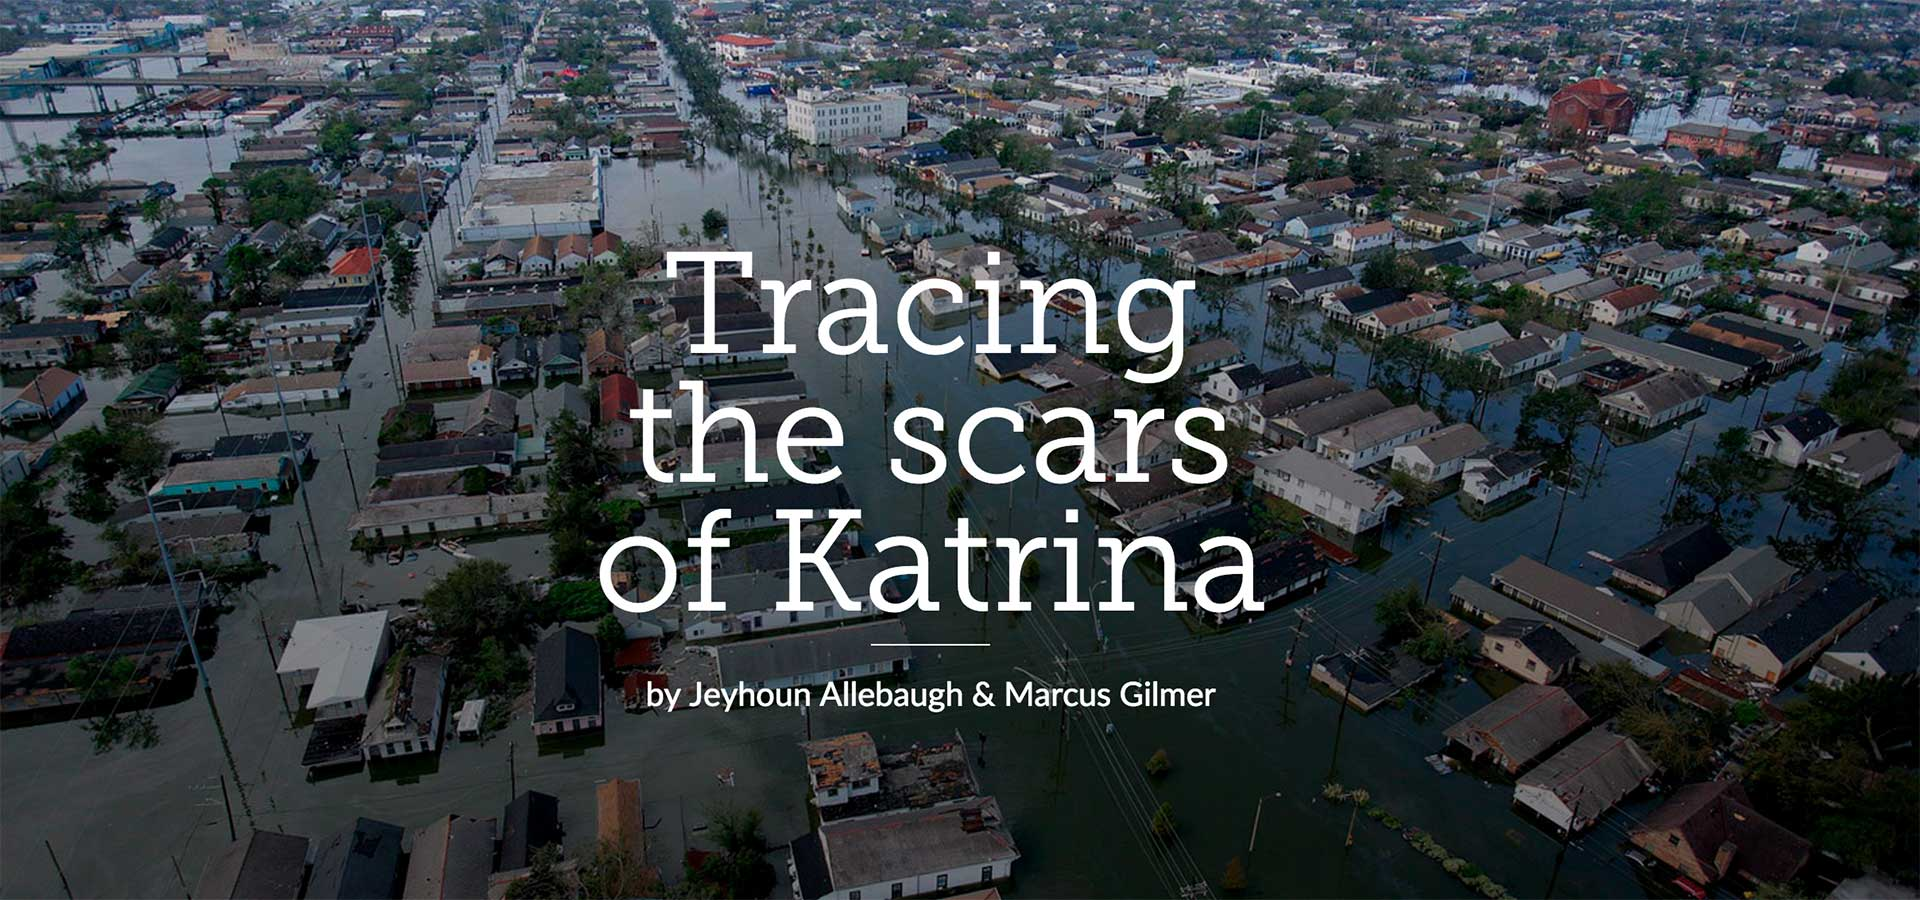 RT @mashable: Tracing the scars of Katrina: Photos of New Orleans, then and now http://t.co/A1r1hQhxK1 http://t.co/sp4LilzMEK